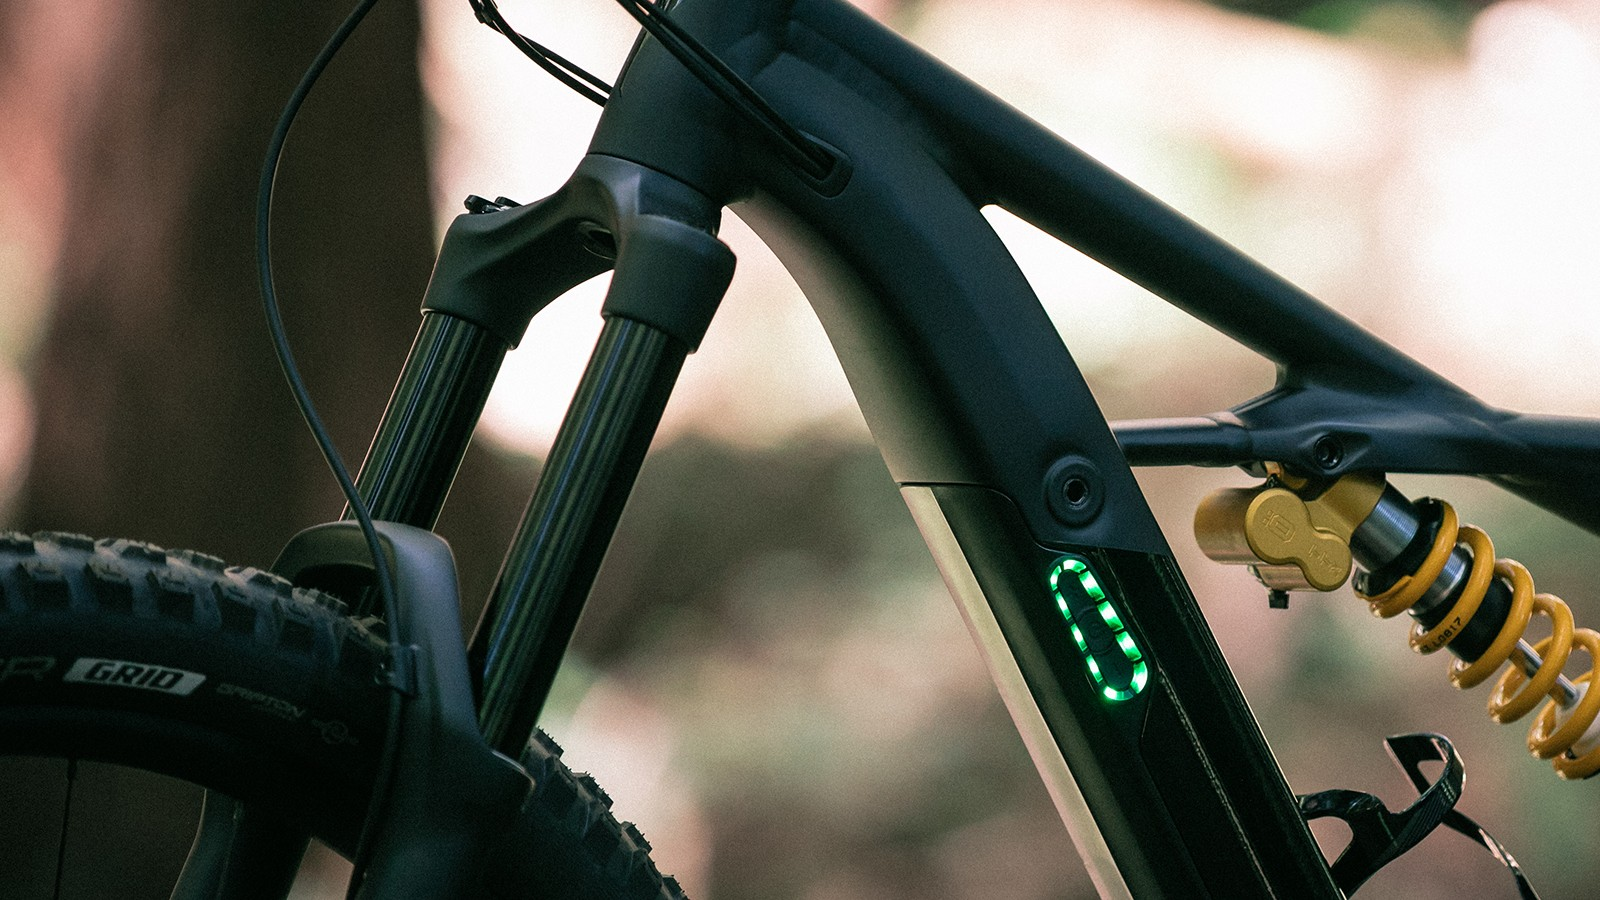 While the Kenevo doesn't offer a head up display unit like many e-MTBs, the LED light on the side of the down tube indicates charge and which of the three modes you're in